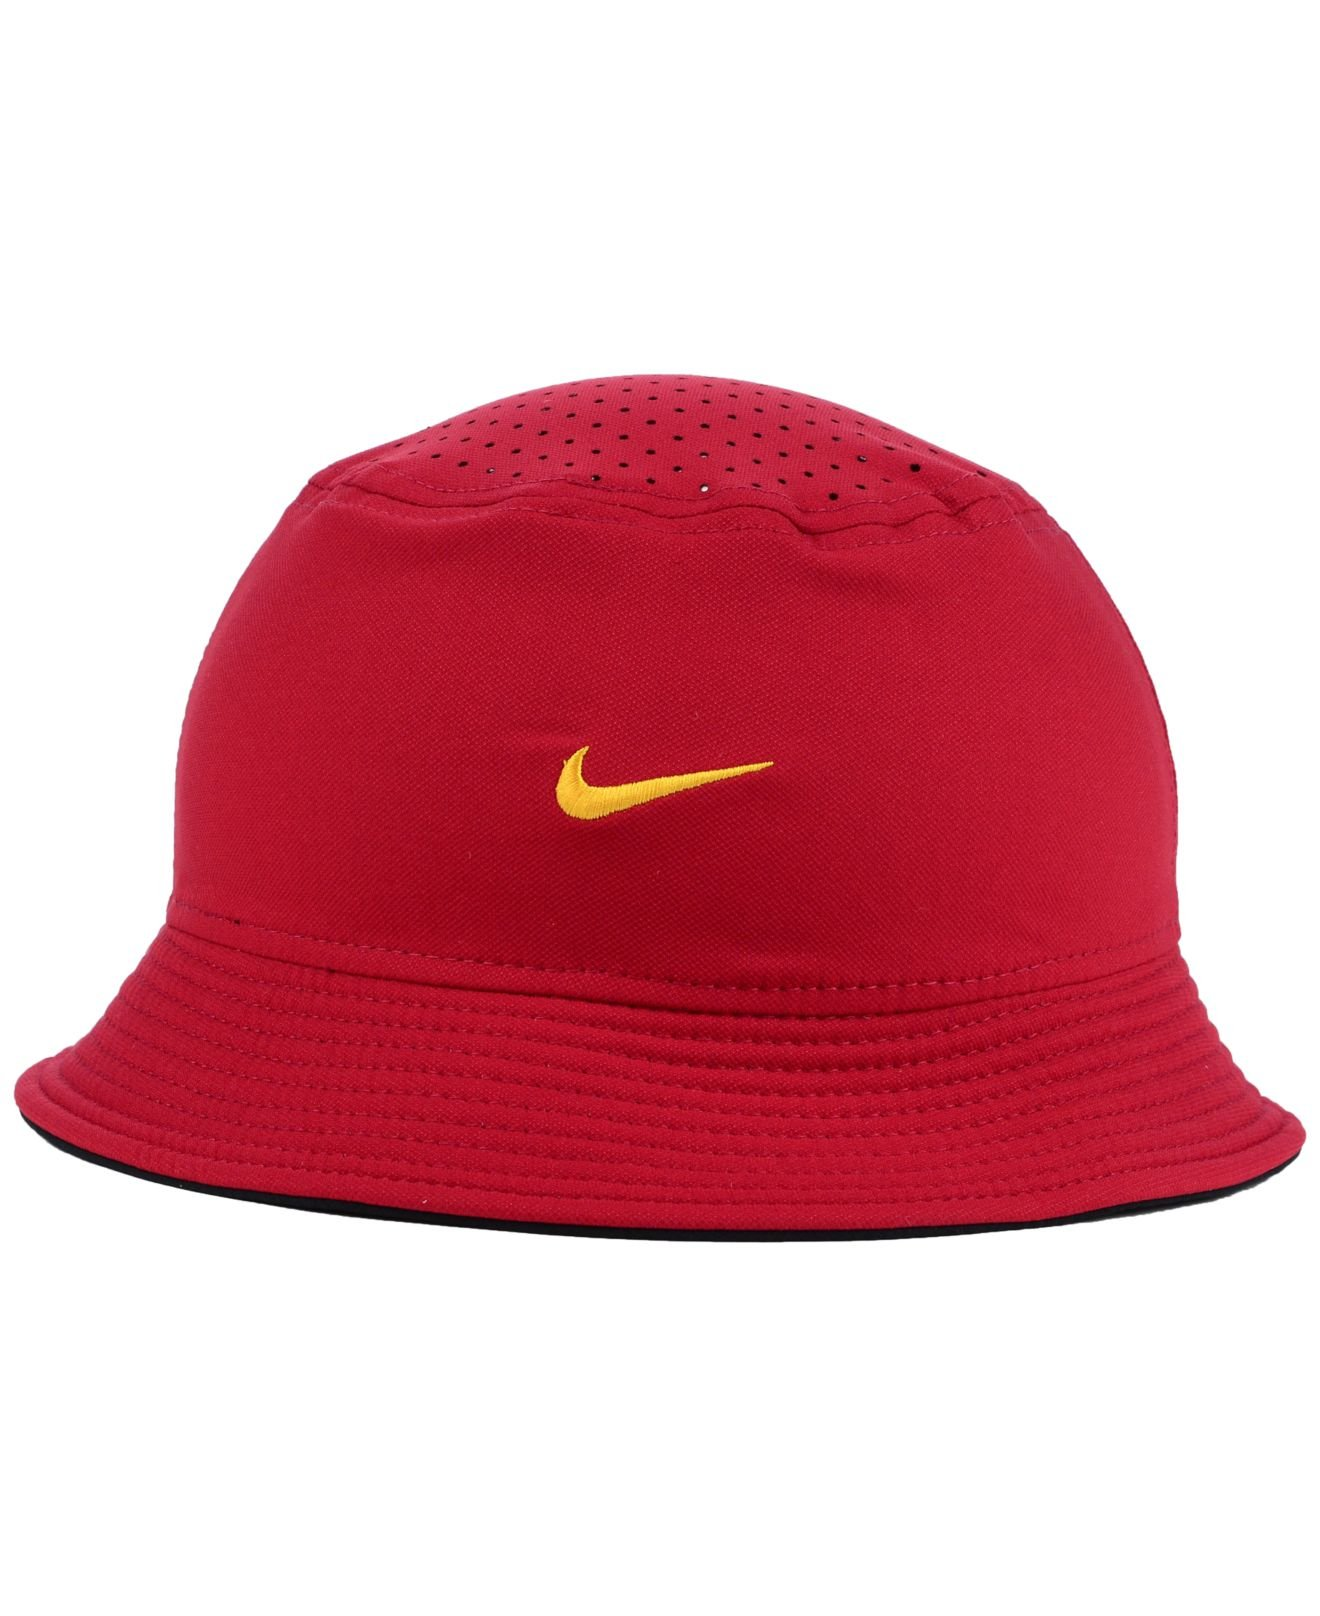 c37ea8a18da Lyst - Nike Usc Trojans Vapor Bucket Hat in Red for Men